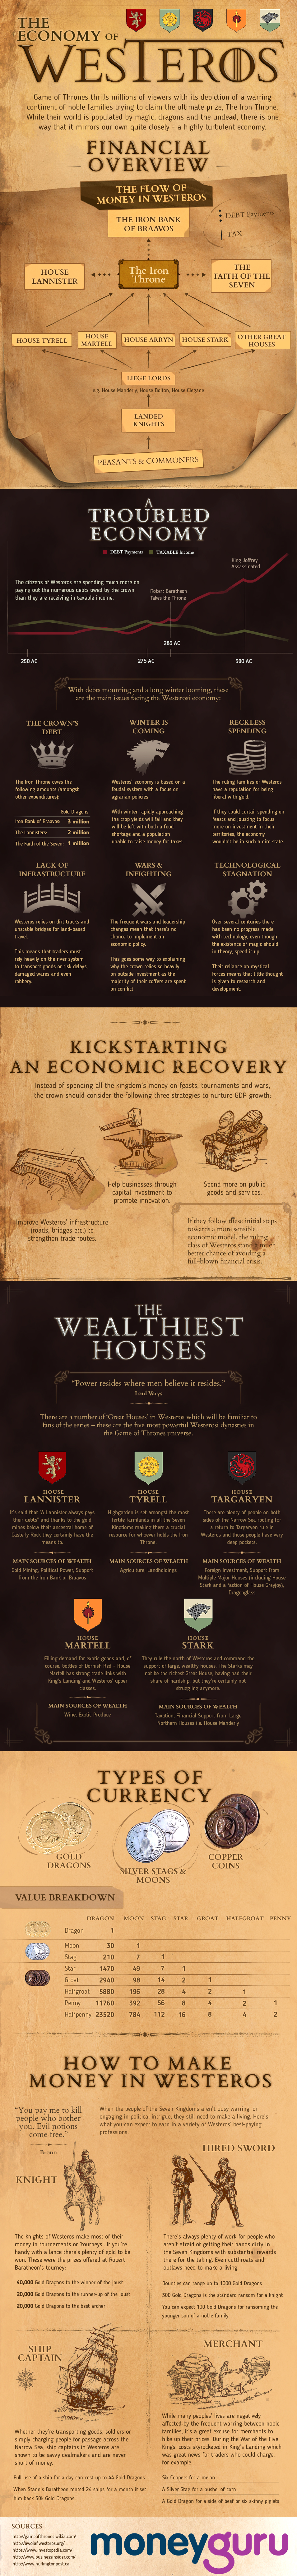 The Economy of Westeros by Money Guru